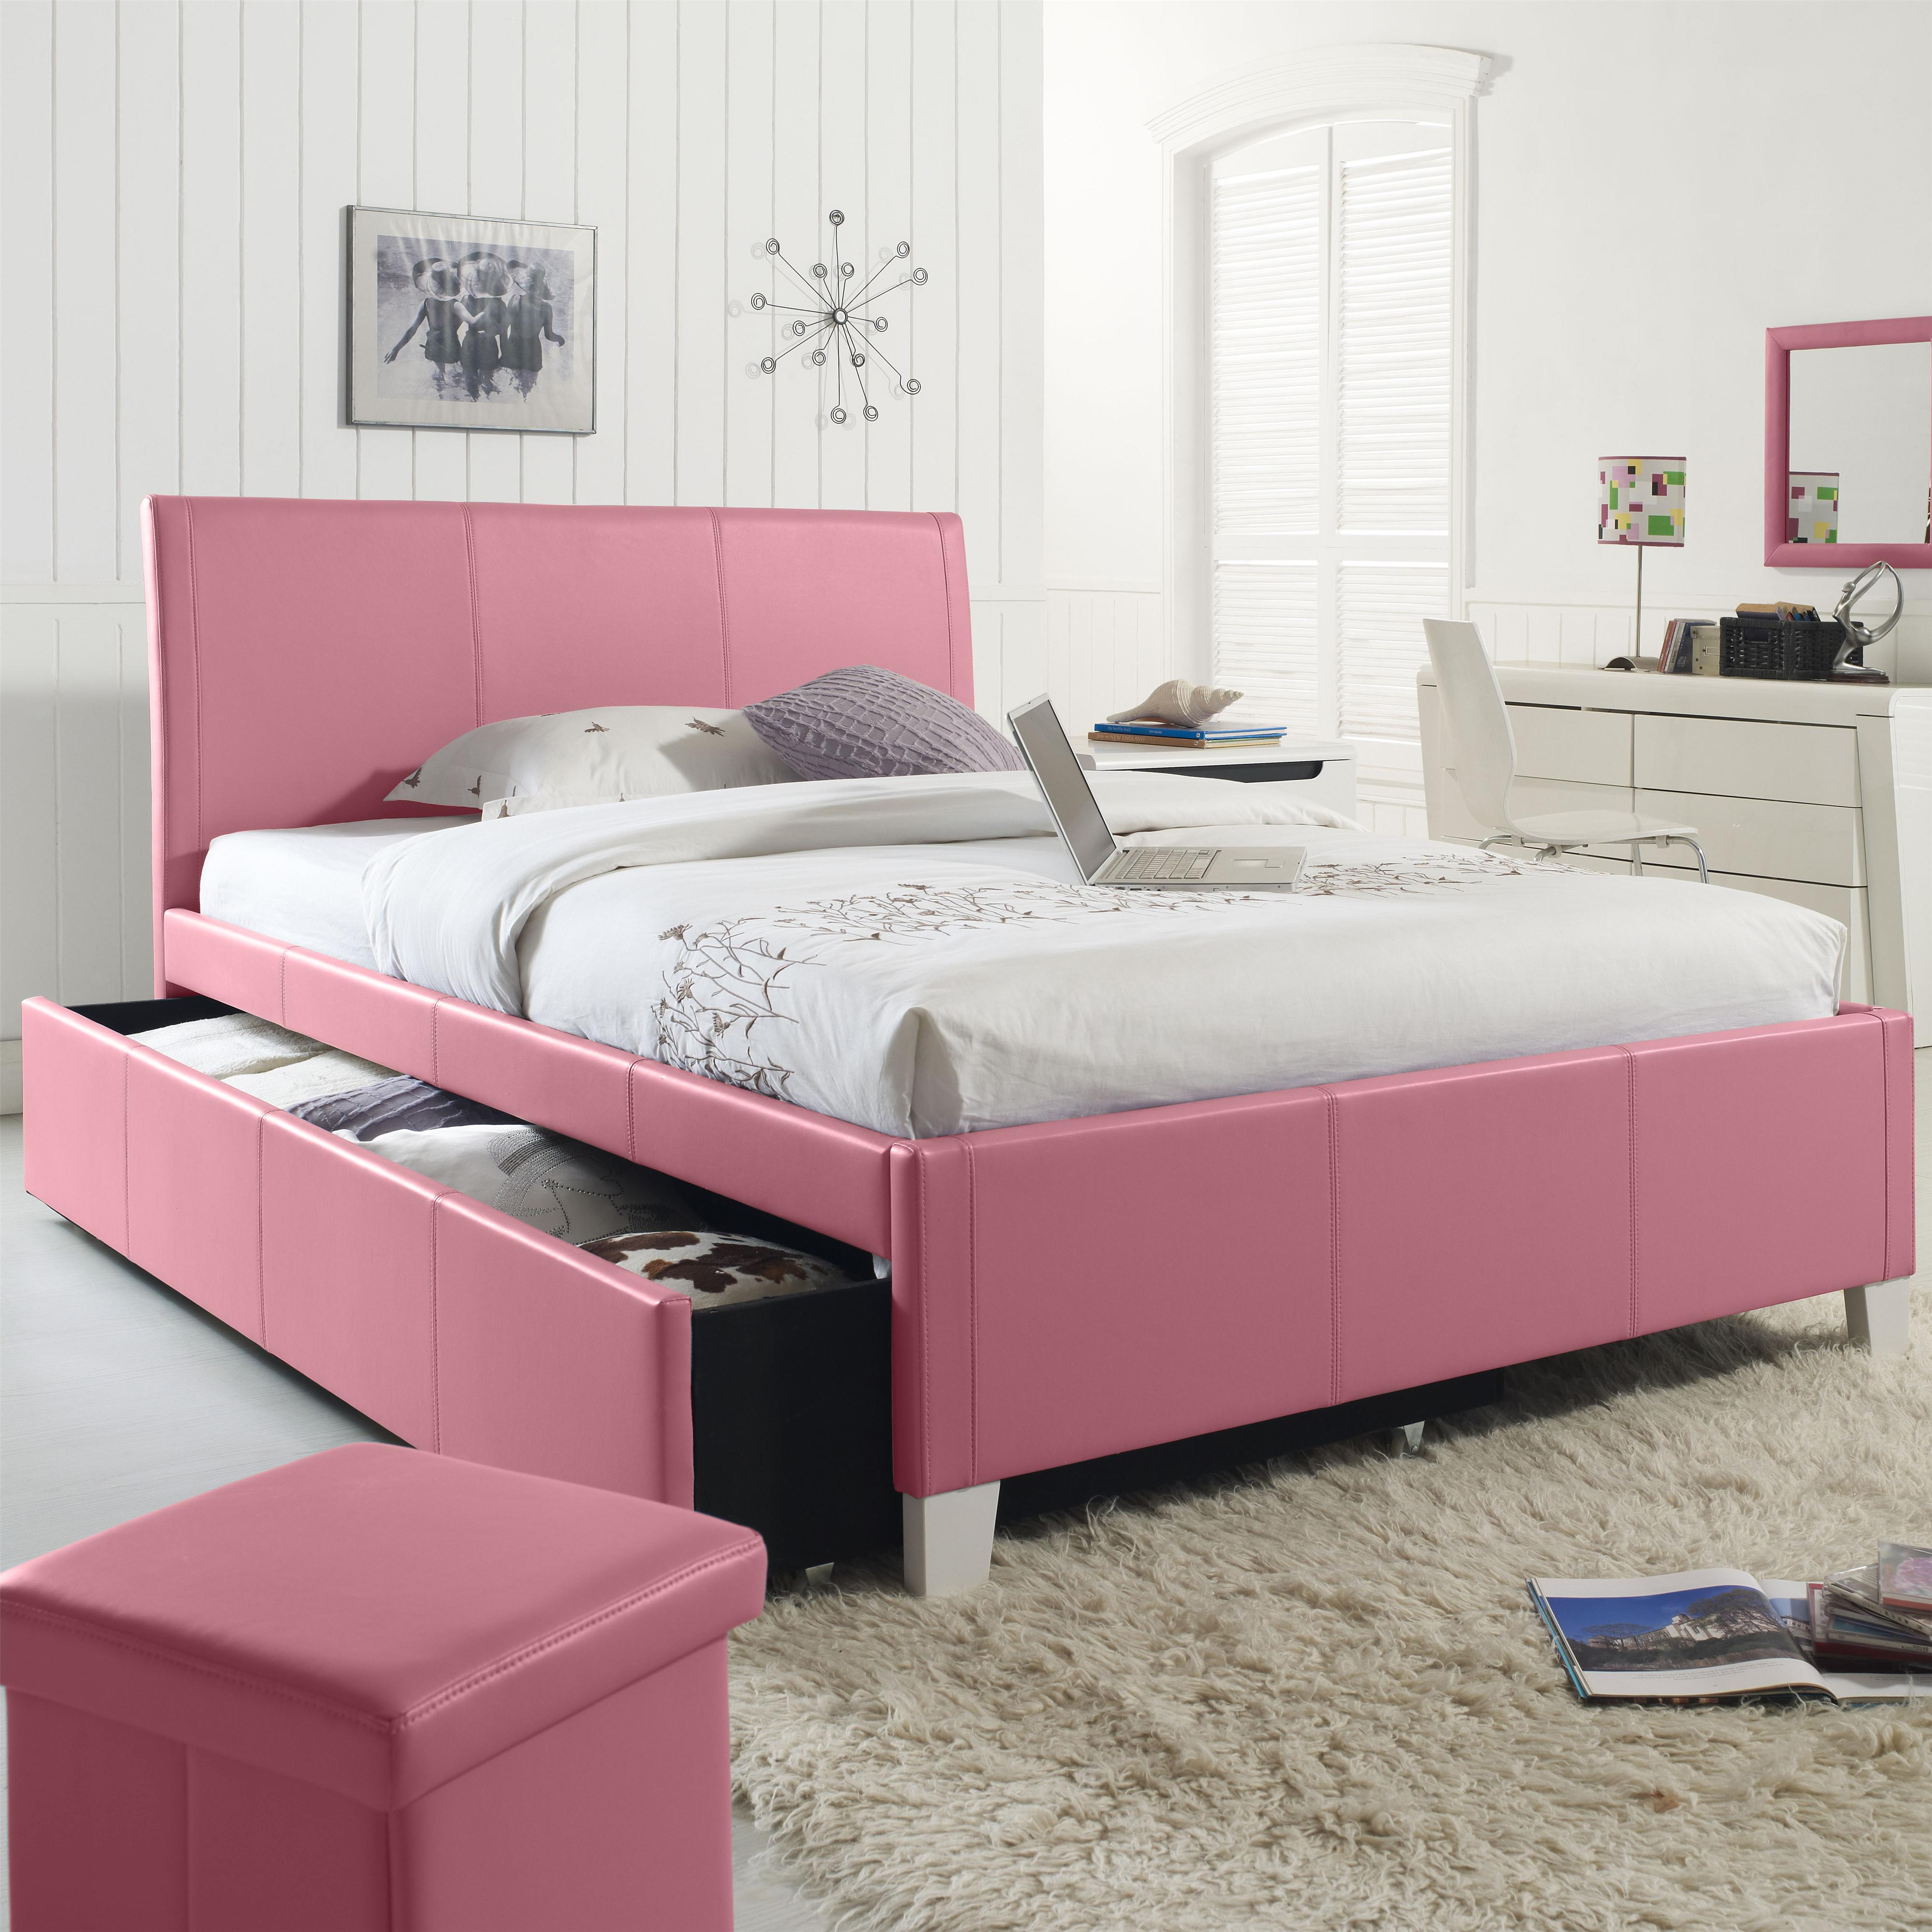 Picture of: Standard Furniture Fantasia Full Upholstered Youth Trundle Bed Fmg Local Home Furnishing Upholstered Beds